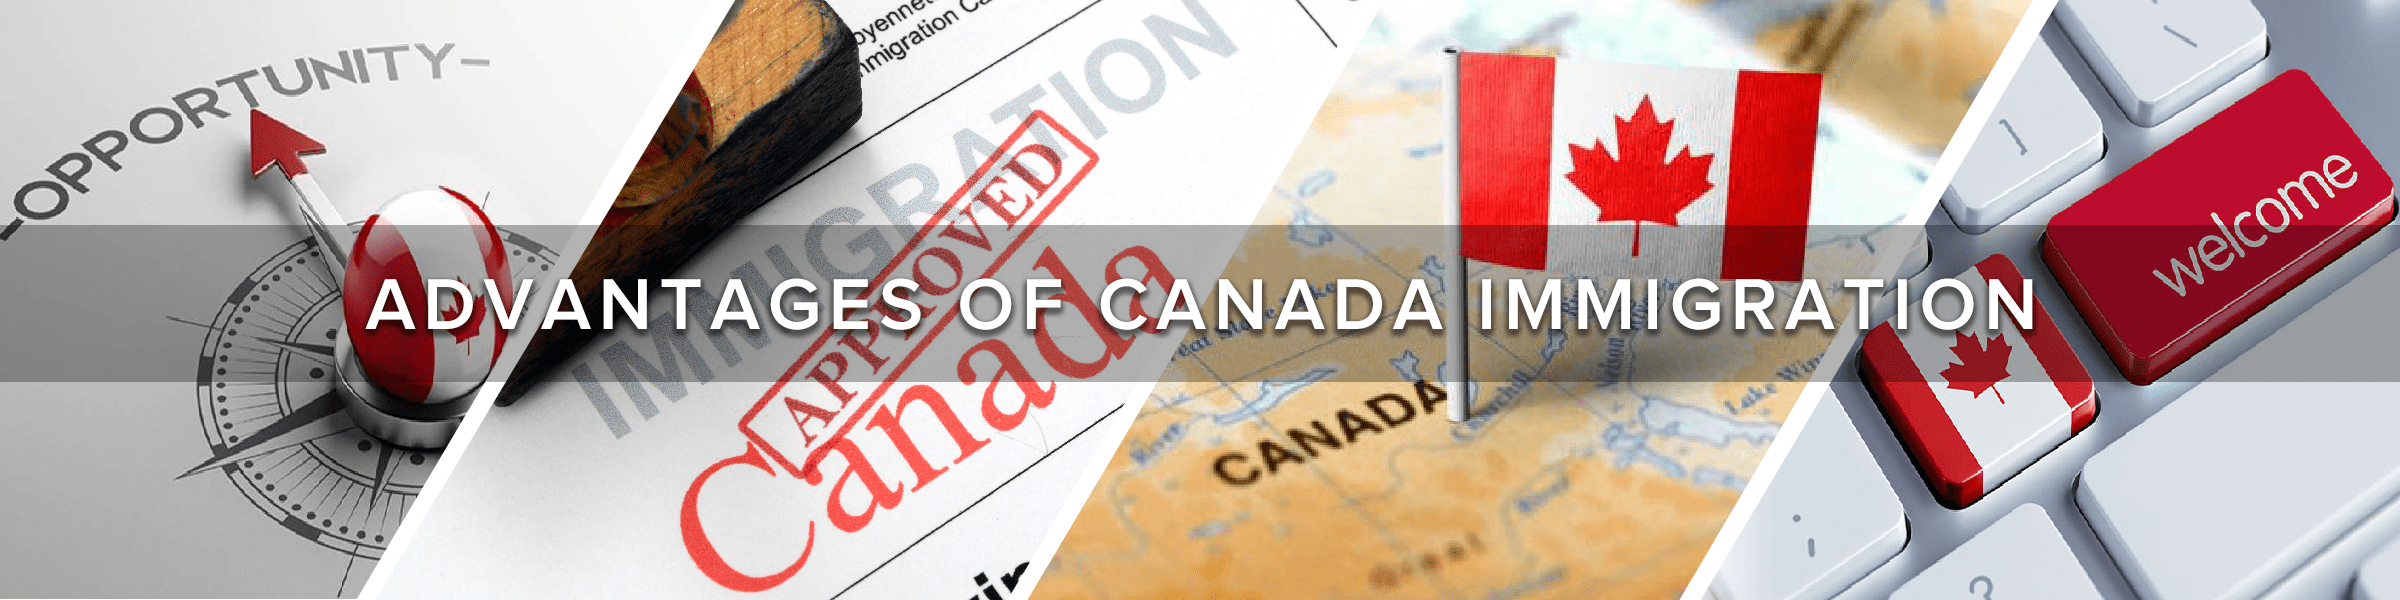 Advantage of Canada Immigration